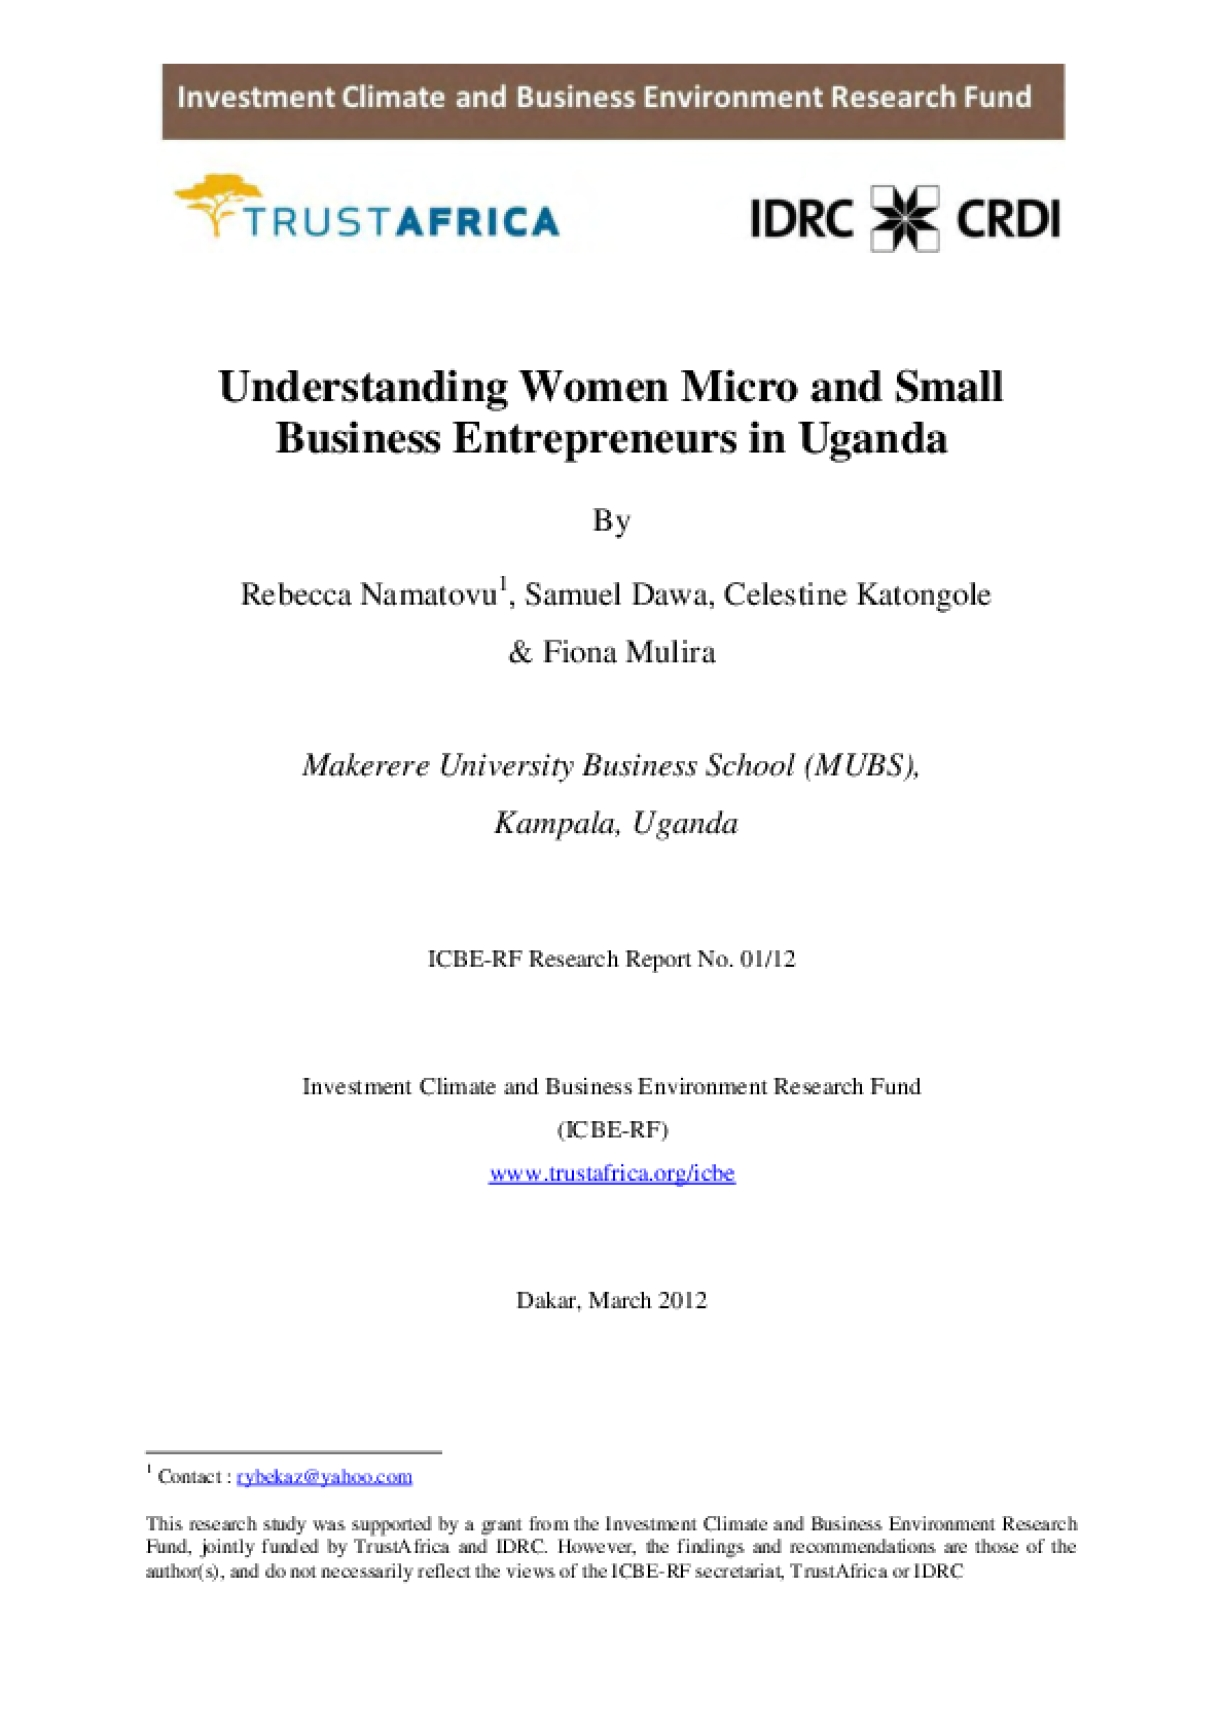 Understanding Women Micro and Small Business Entrepreneurs in Uganda